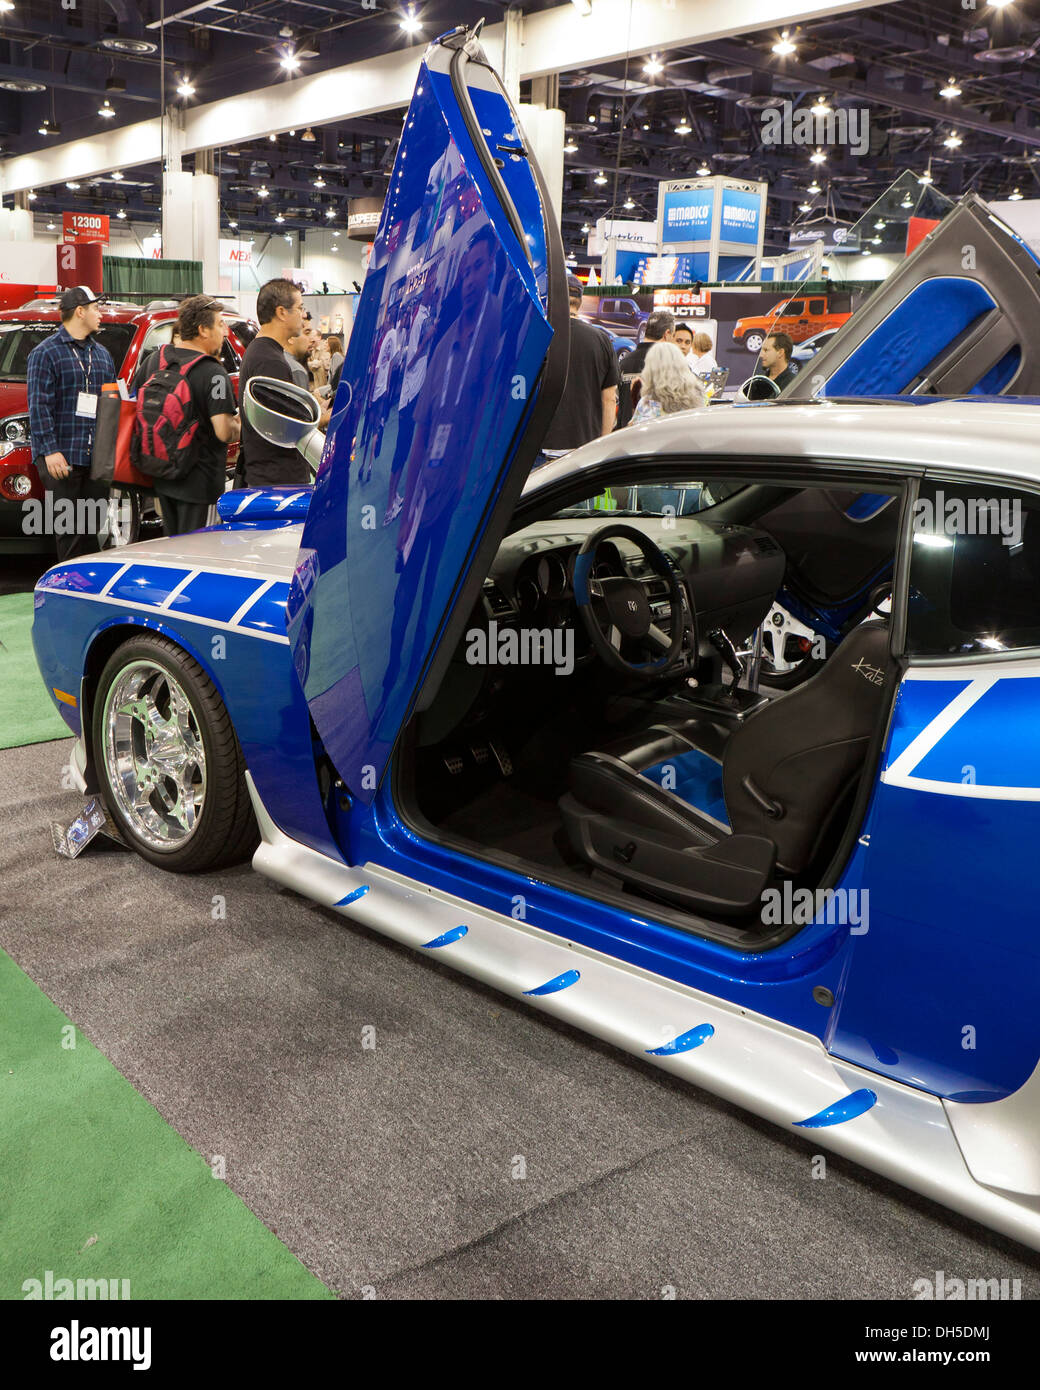 Dodge Charger sport car rebuild with scissor doors - Stock Image